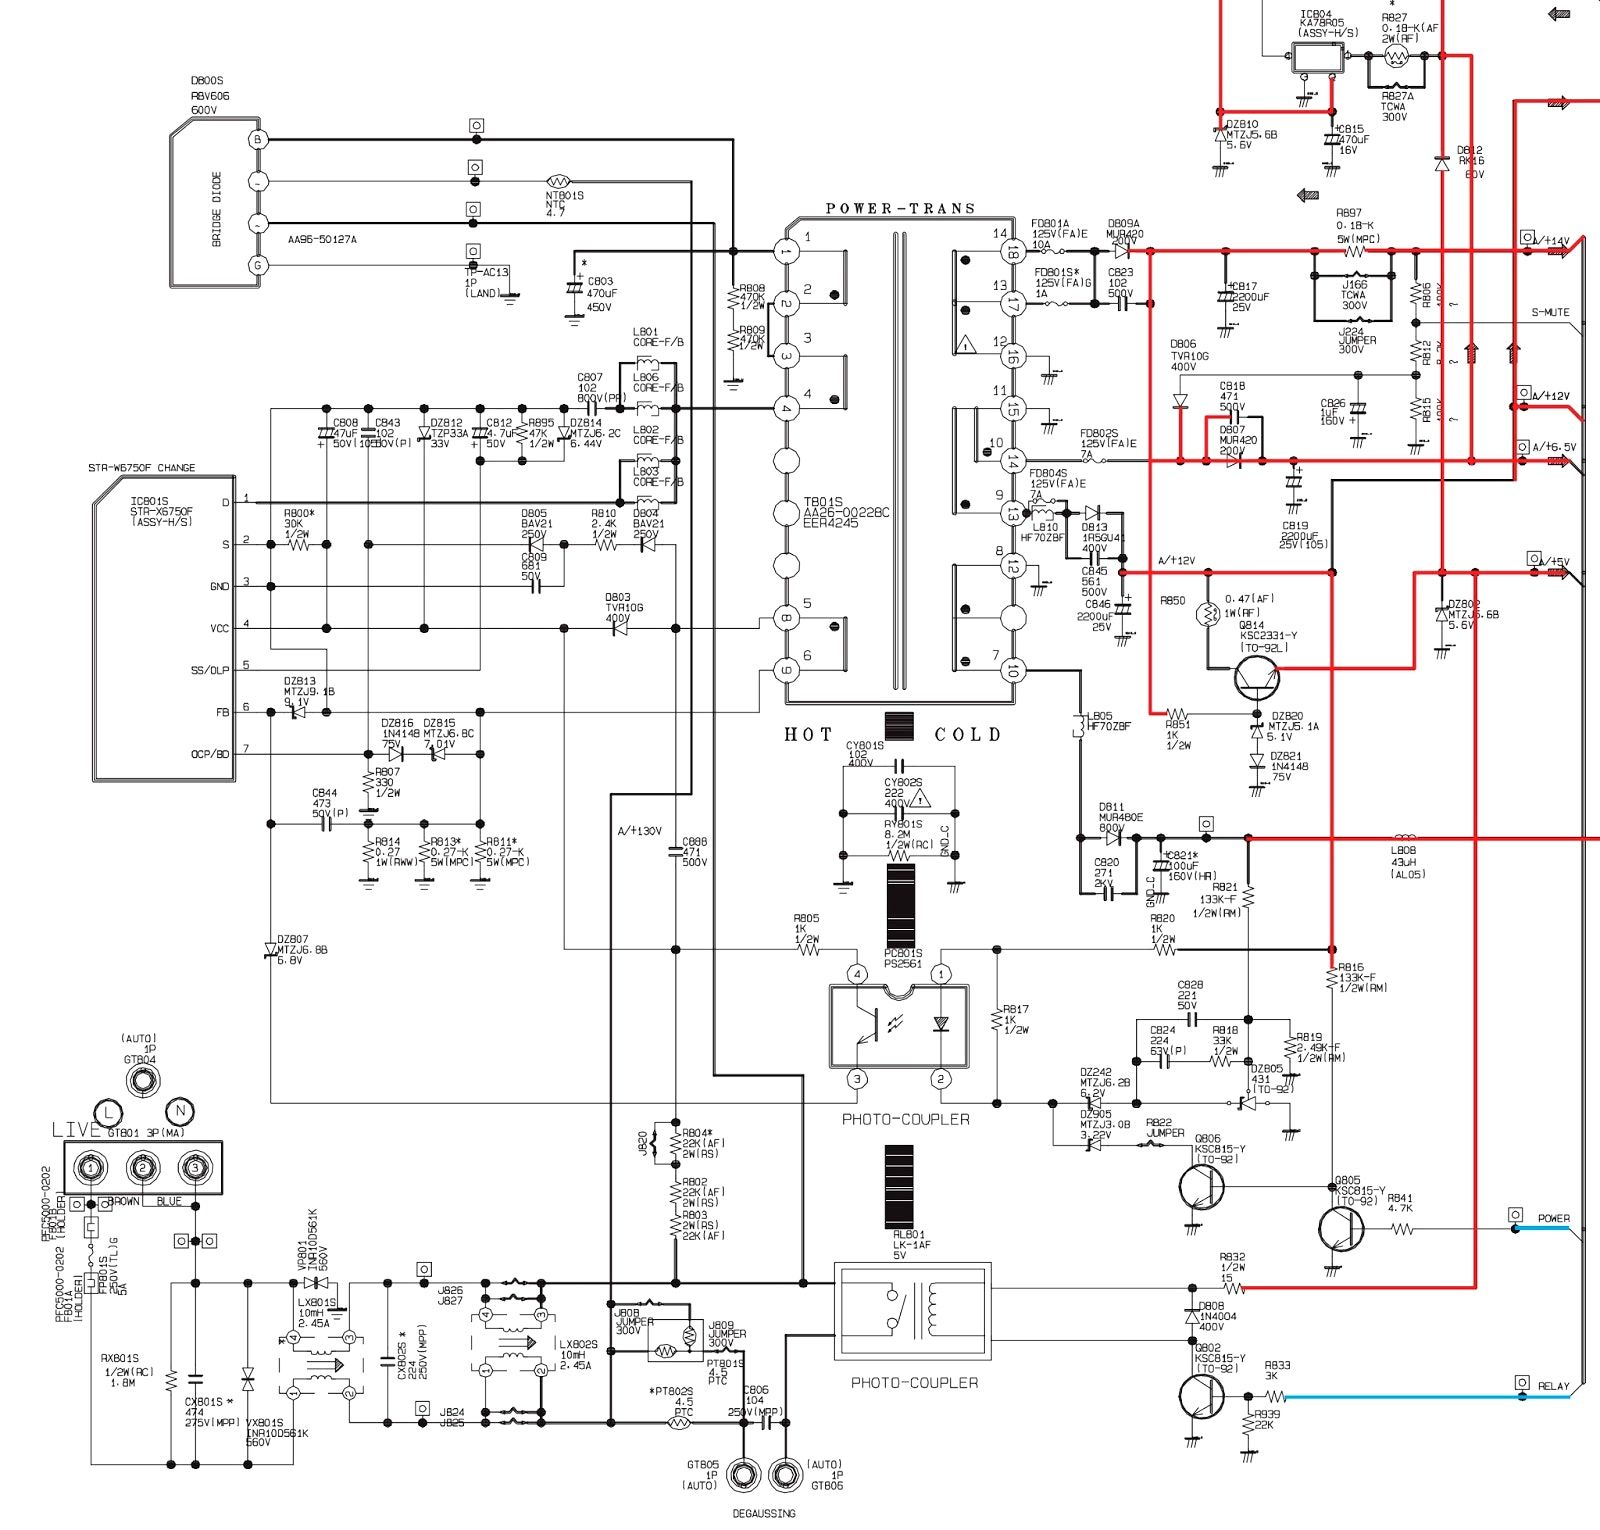 small resolution of samsung led tv wiring schematic wiring diagrams the samsung usb wiring diagram led tv circuit diagram